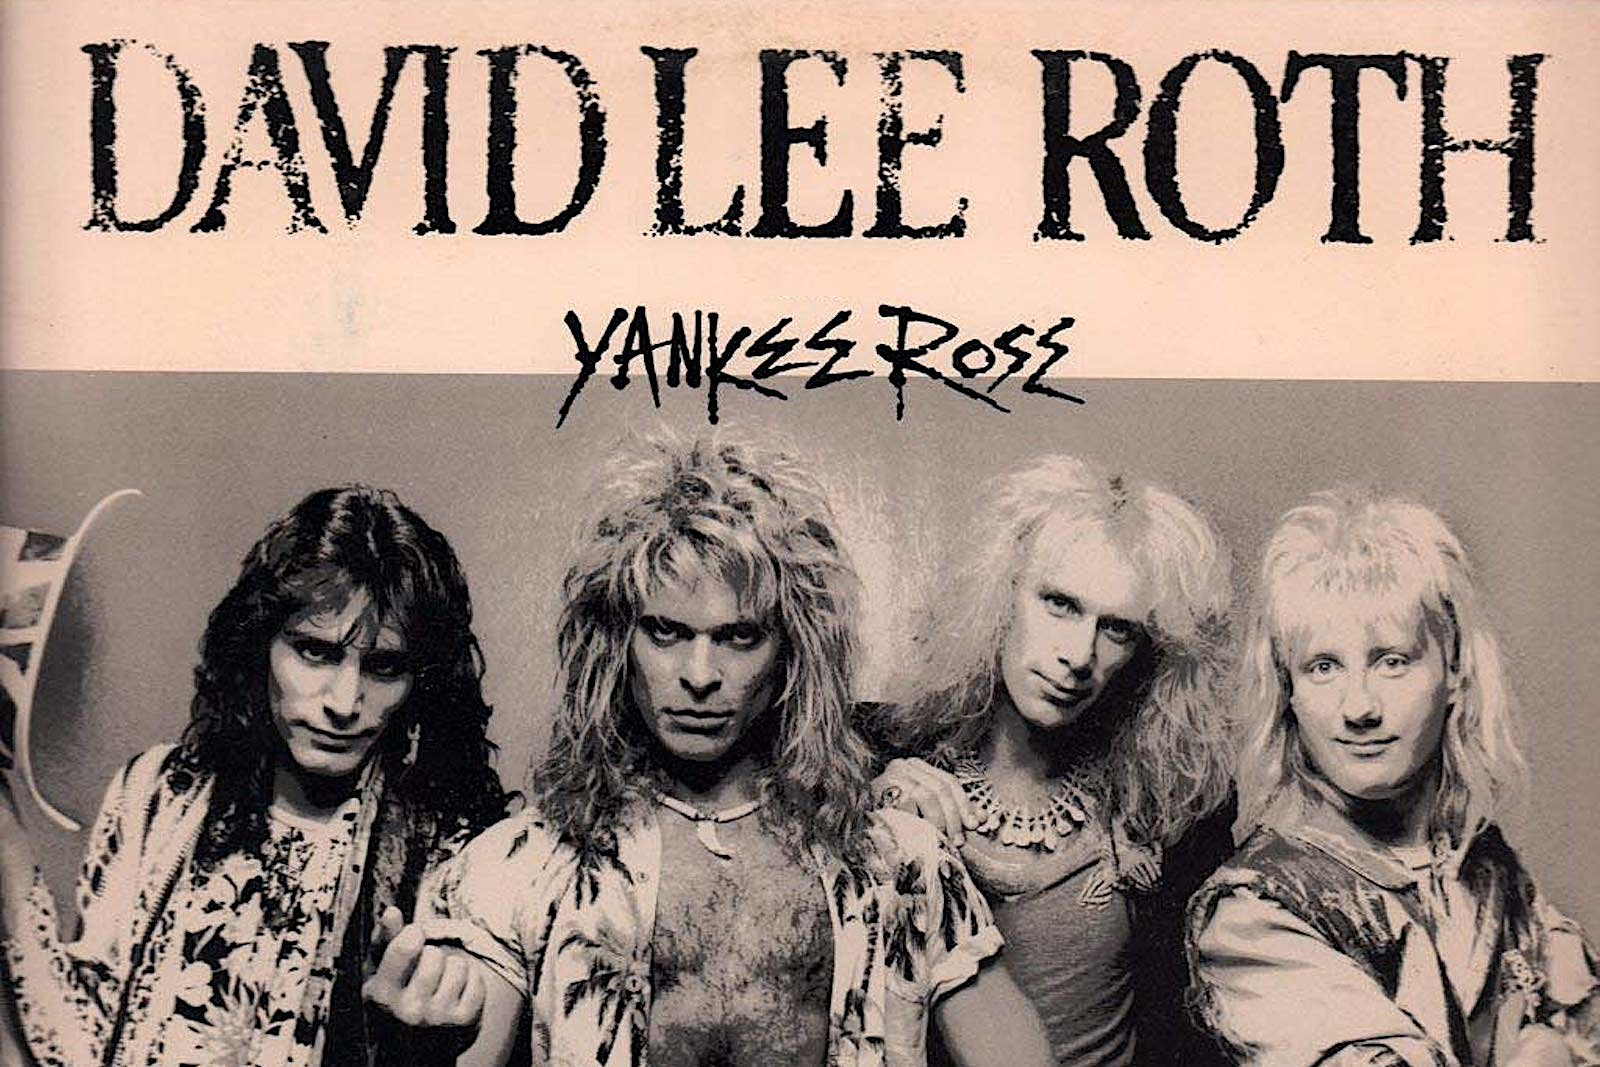 35 Years Ago: David Lee Roth Stakes His Claim With 'Yankee Rose'